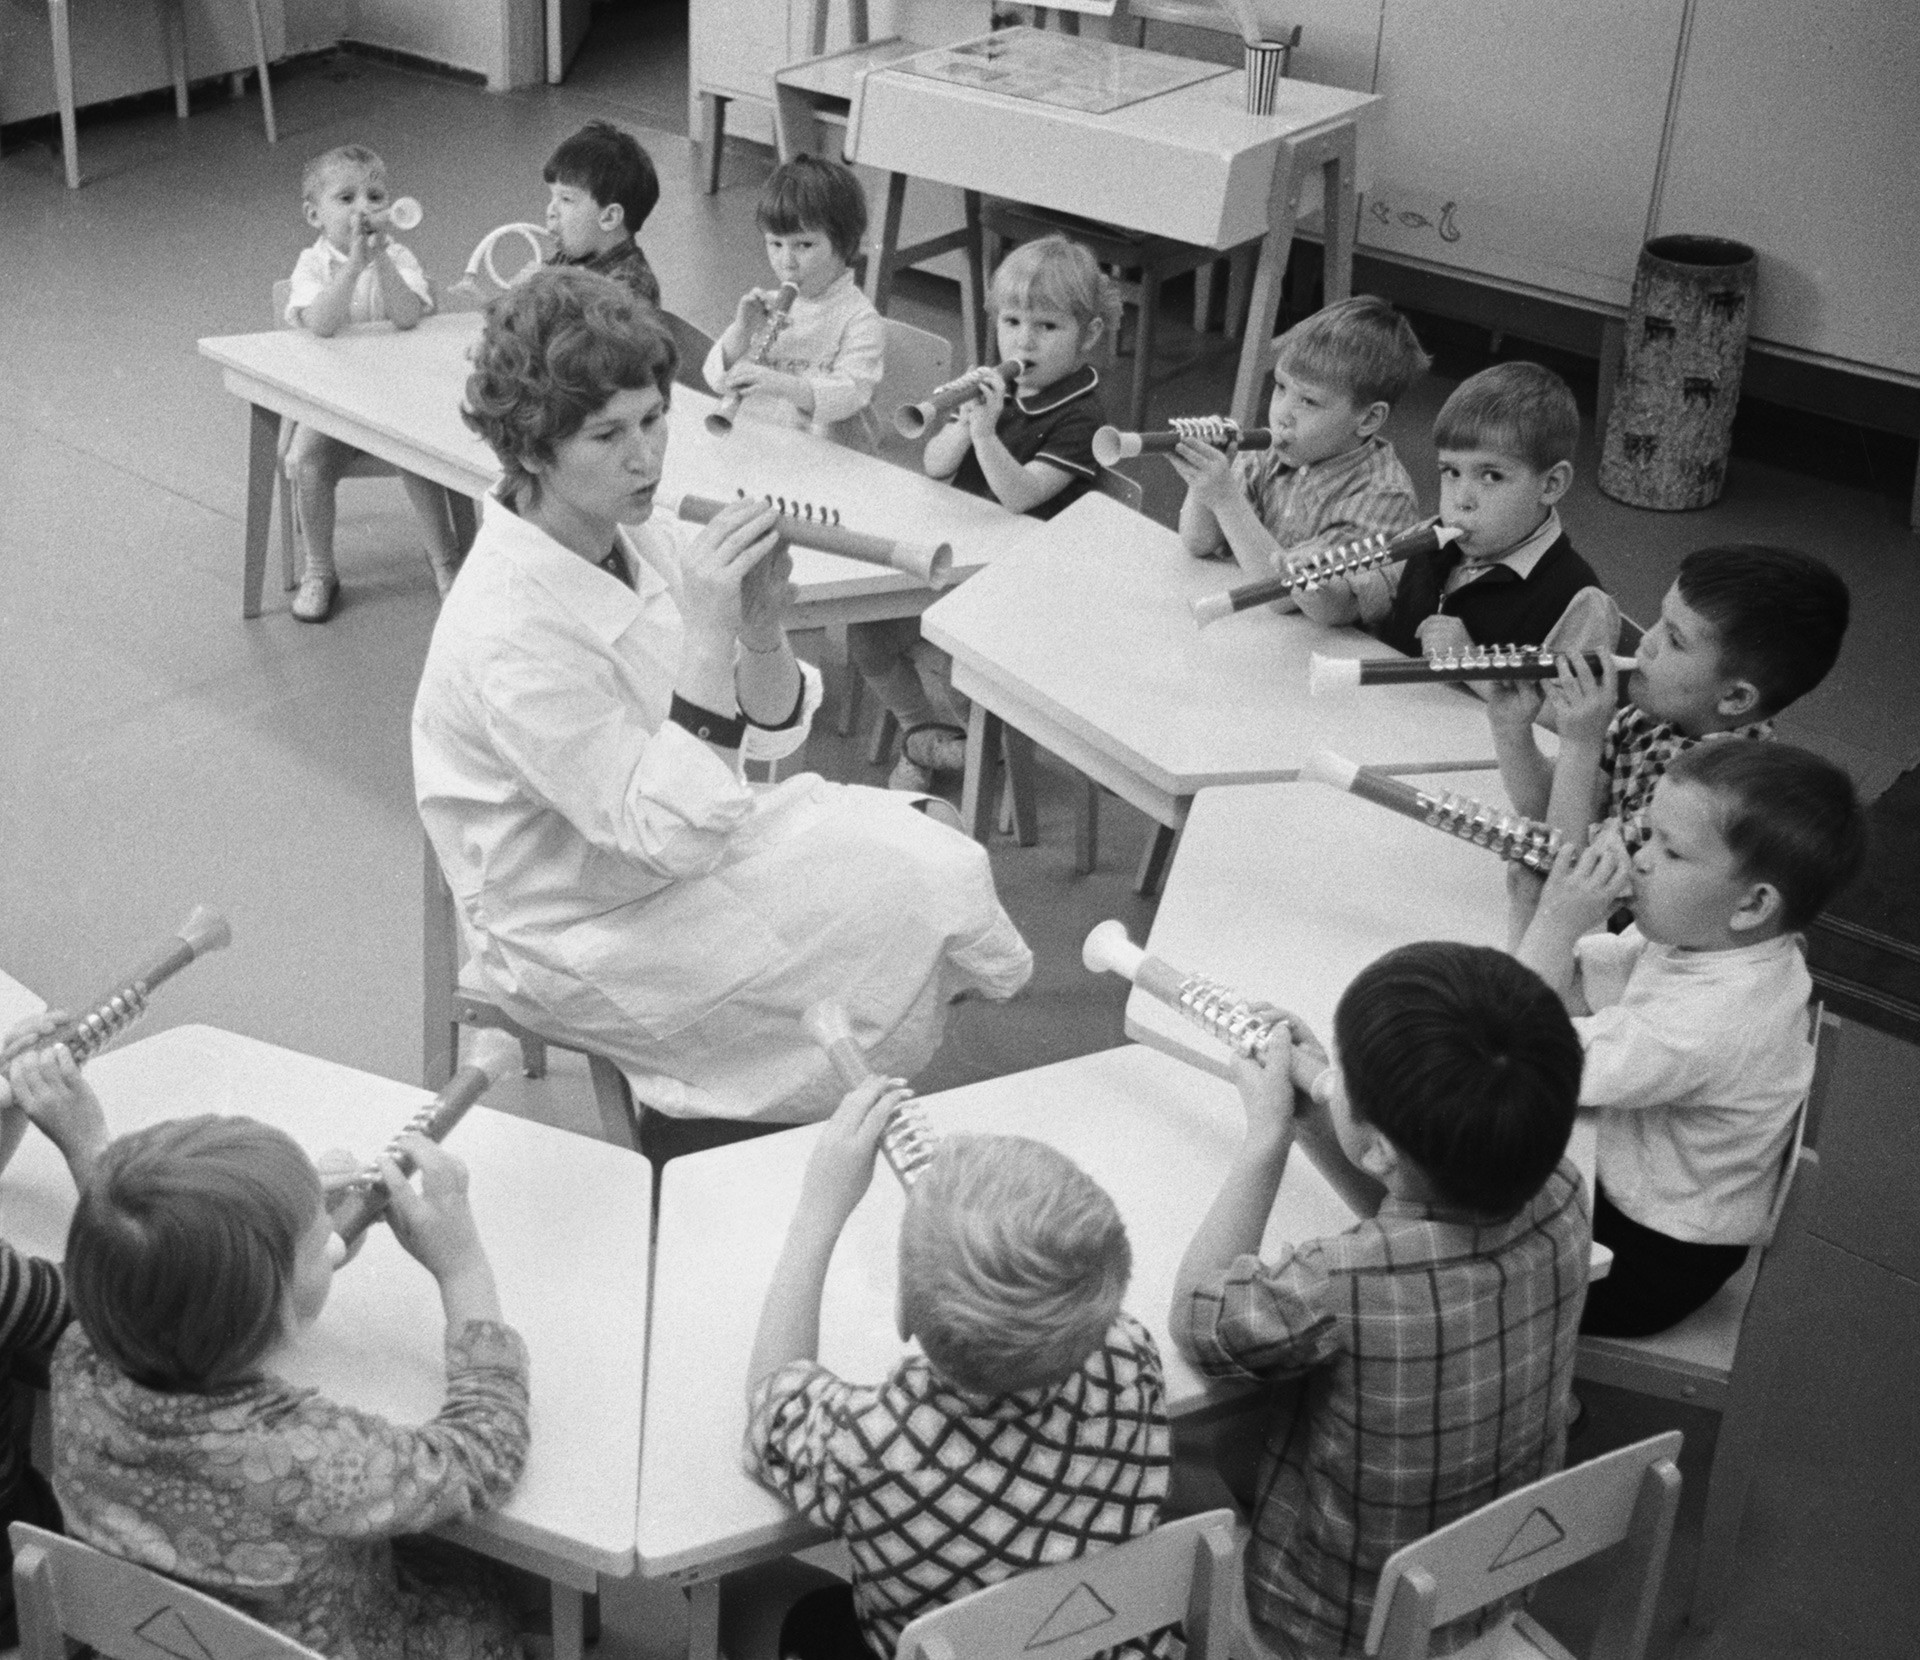 The truth about kindergartens in the USSR